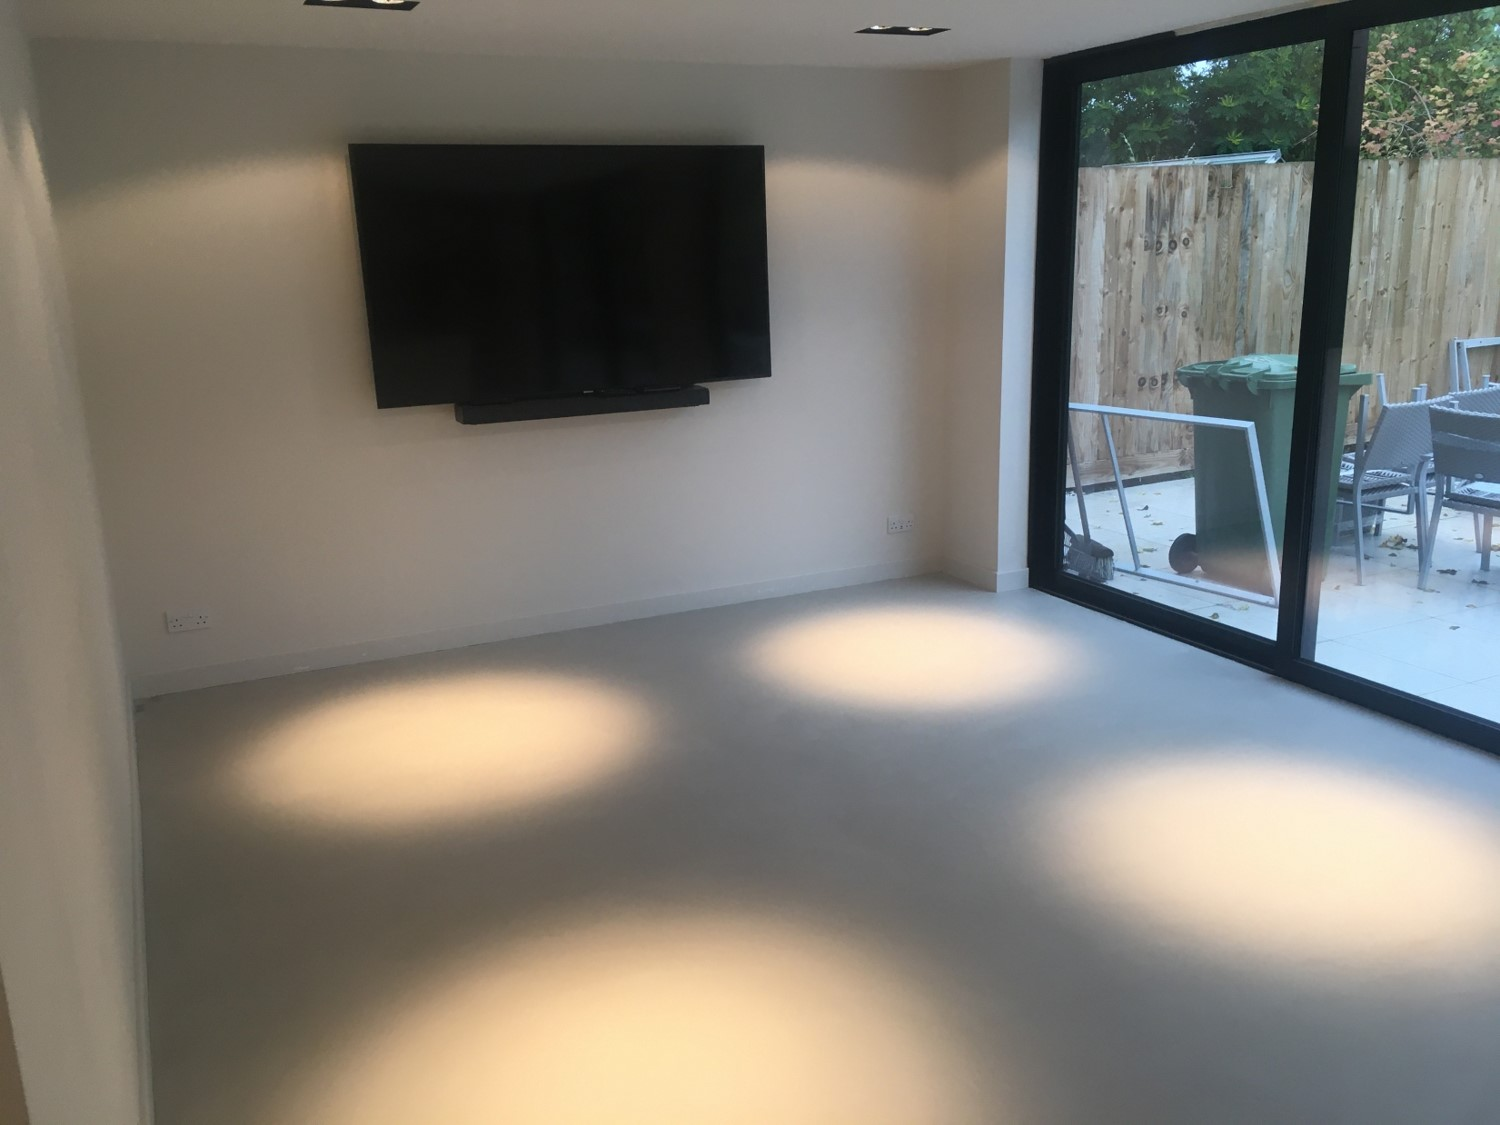 Polished concrete floors Ardex microtopping from Polished Concrete specialists in Fulbourne Cambridge Living Room